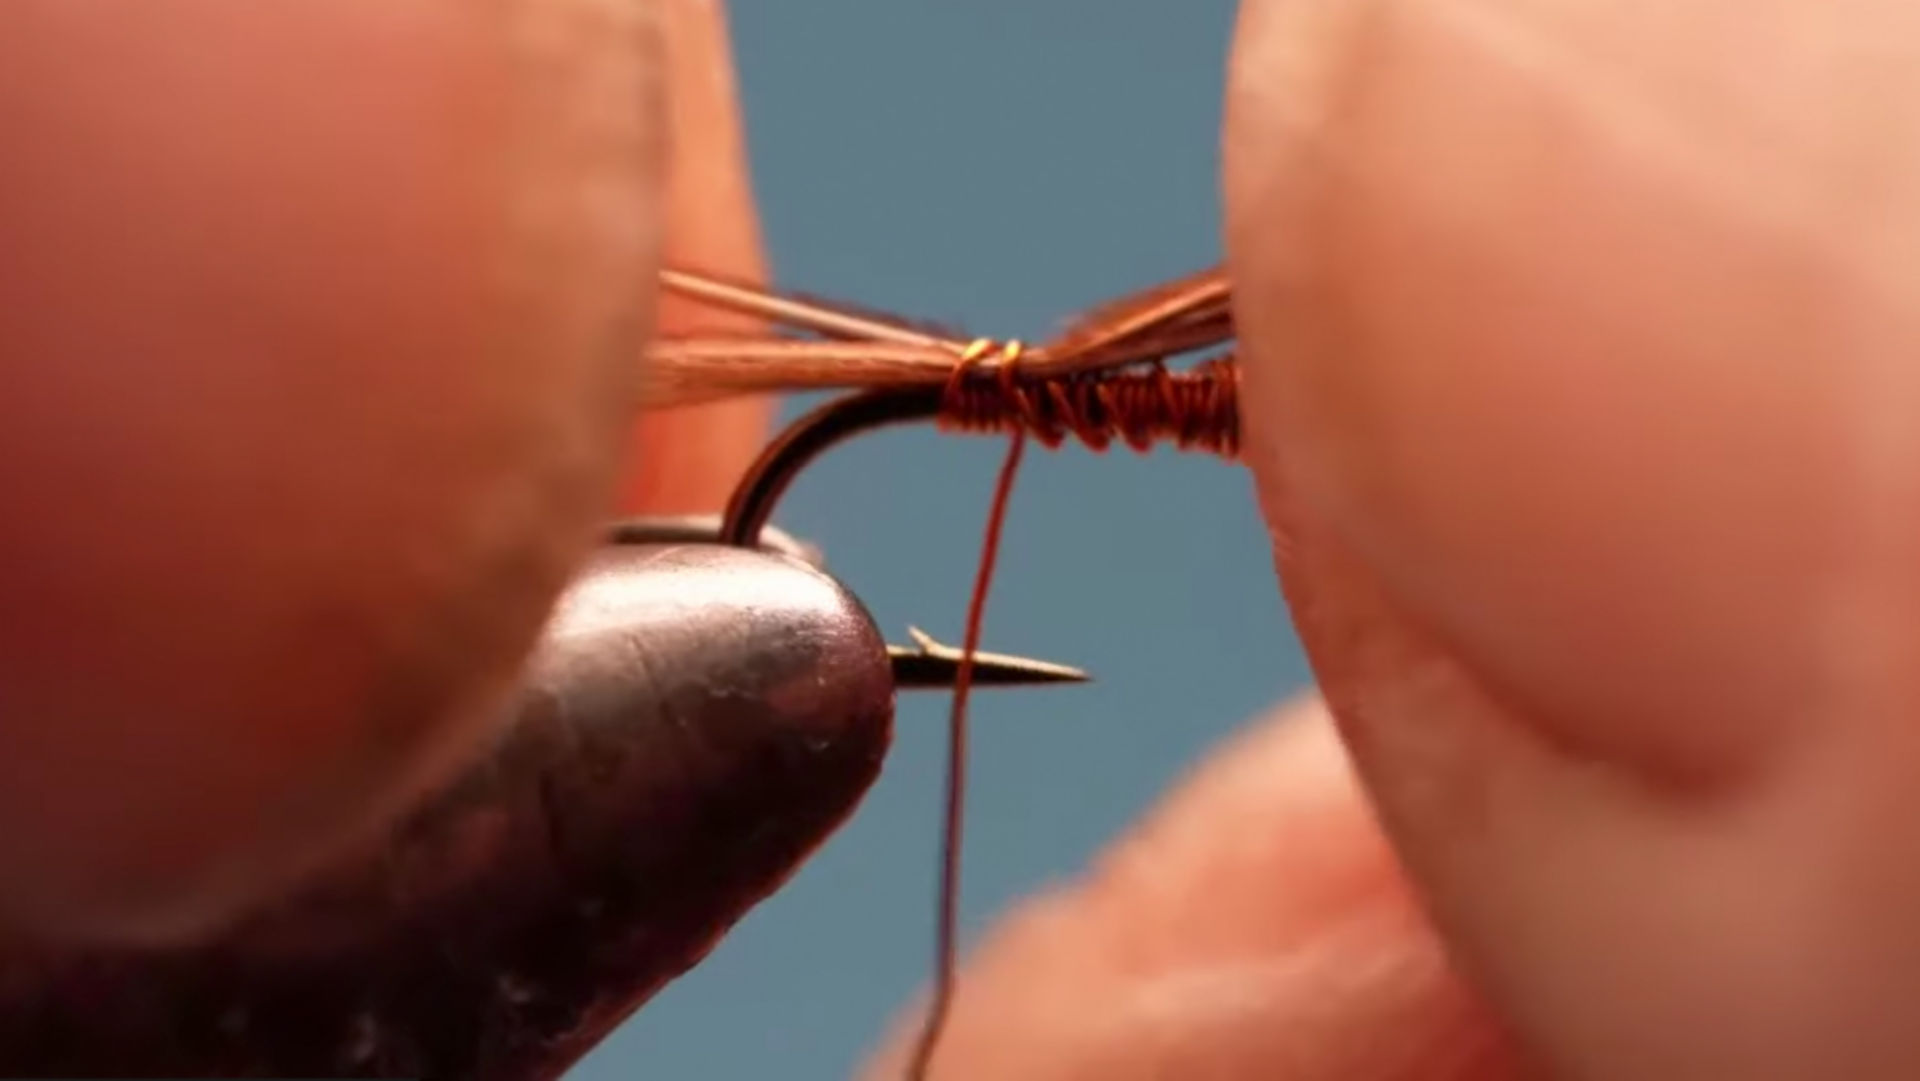 AN extreme close-up of fingers tying a fly on a vice.